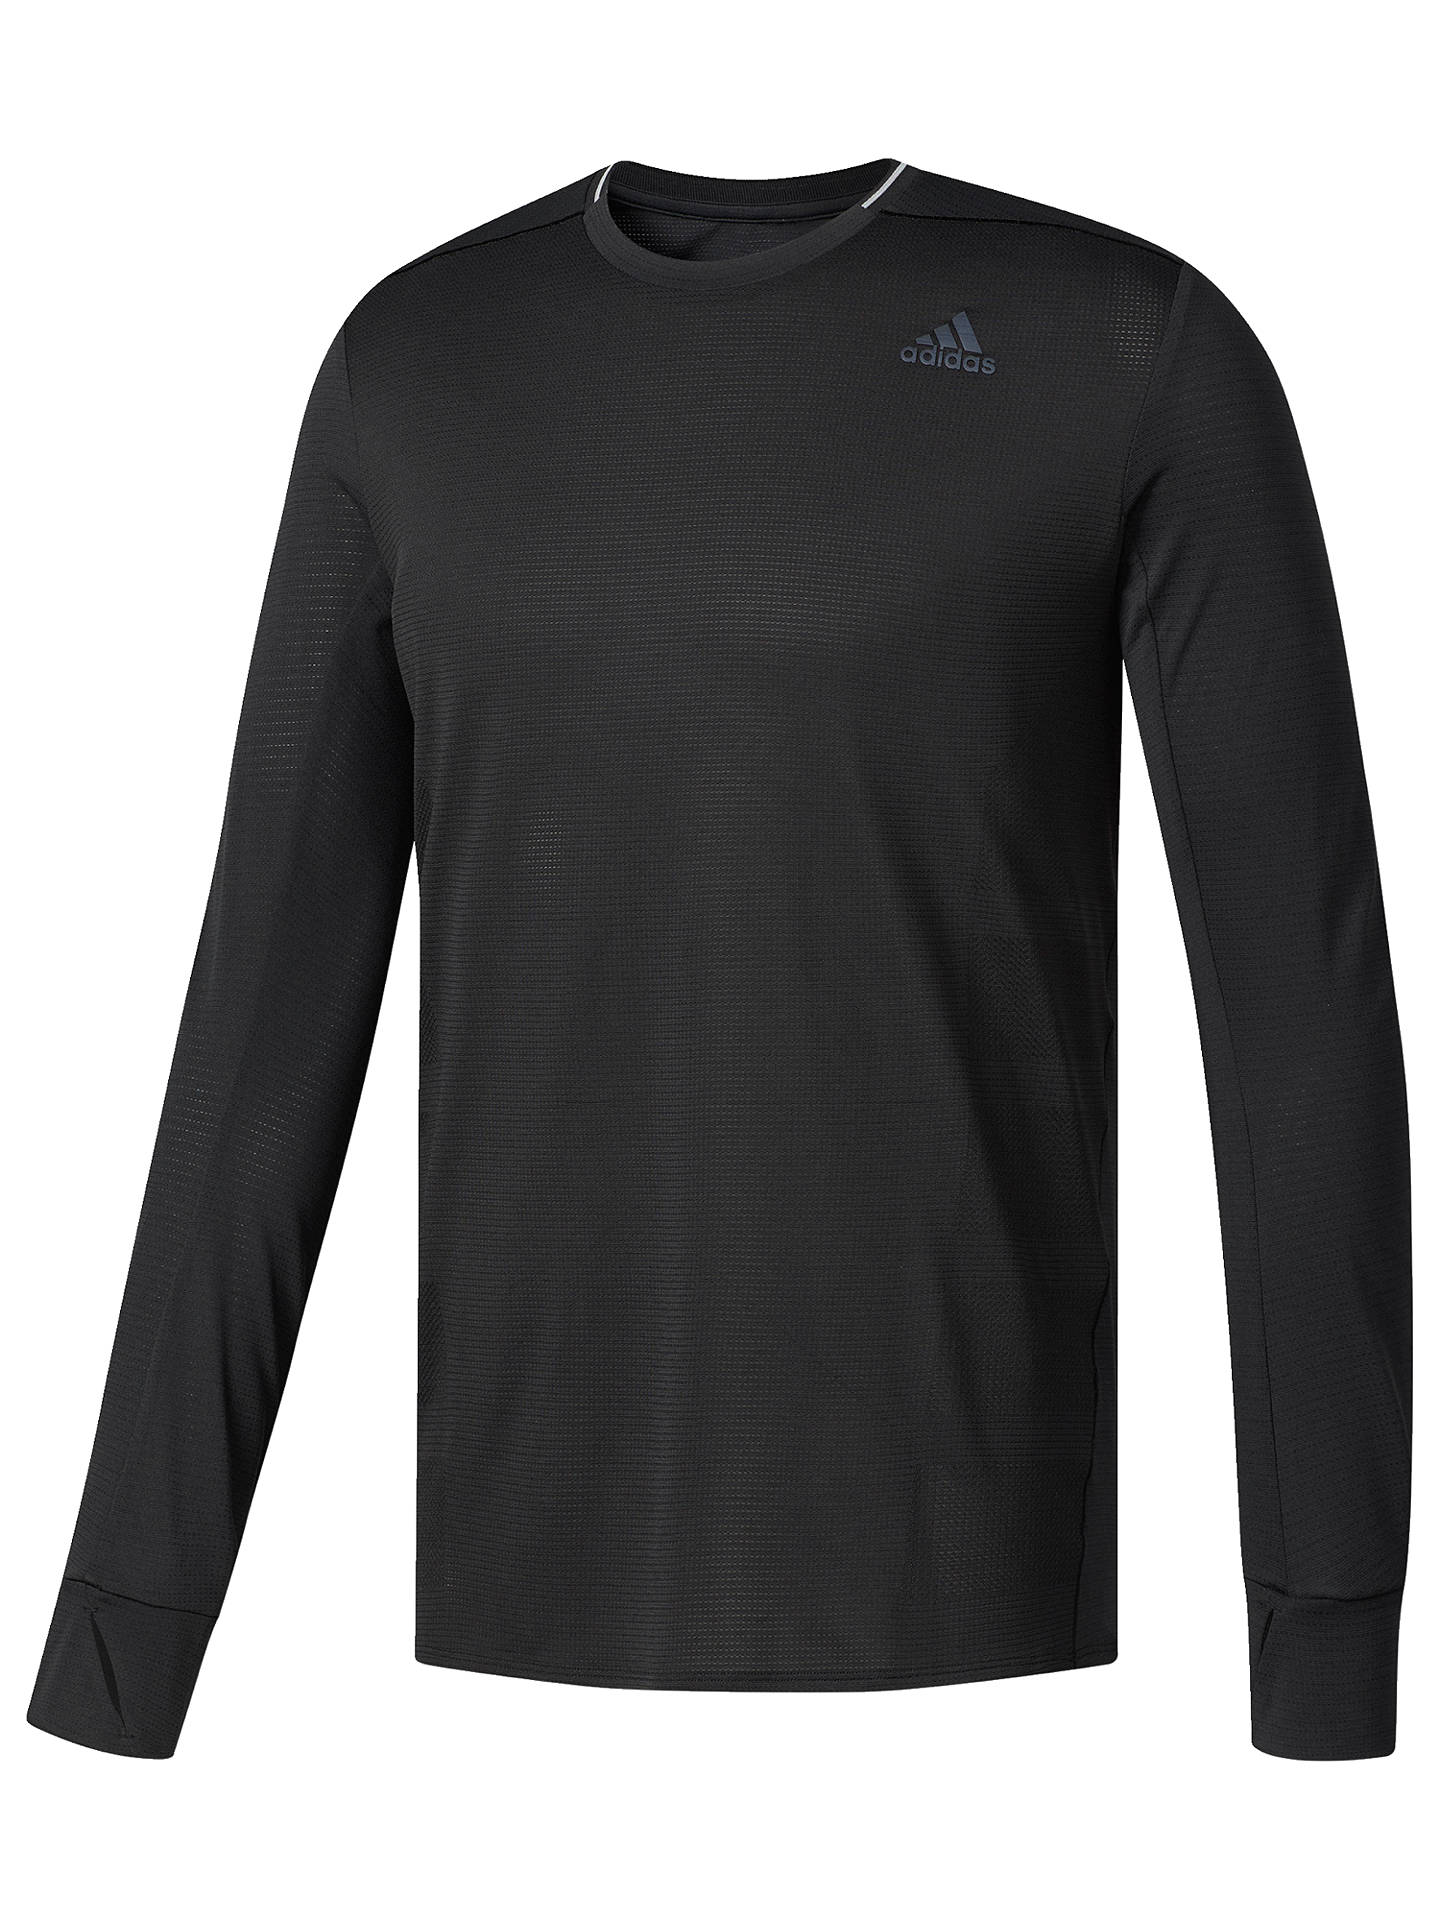 296083b0 adidas Supernova Long Sleeve Running T-Shirt, Black at John Lewis ...